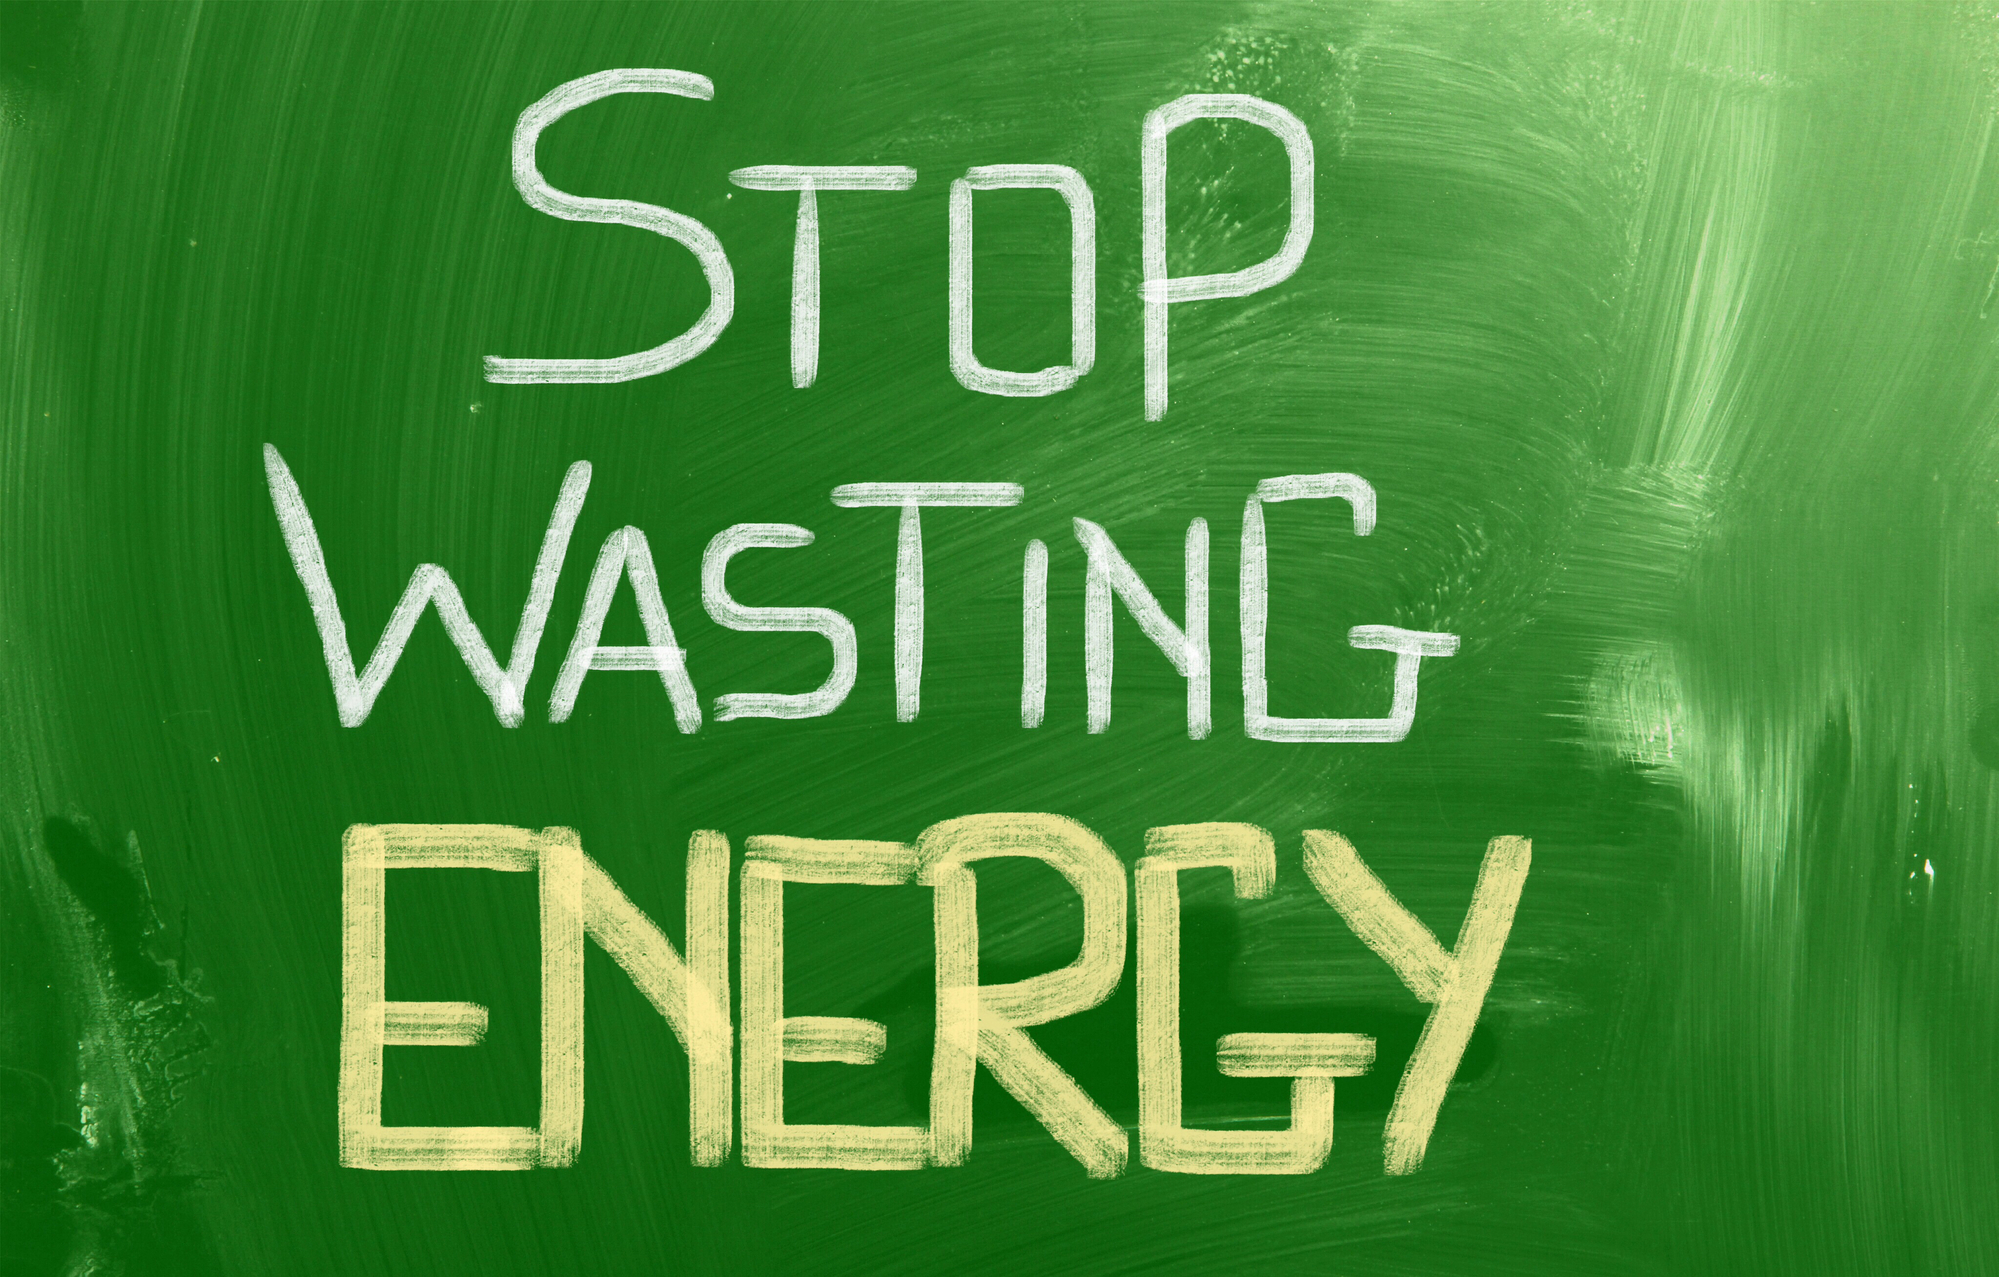 energy wasting habits text